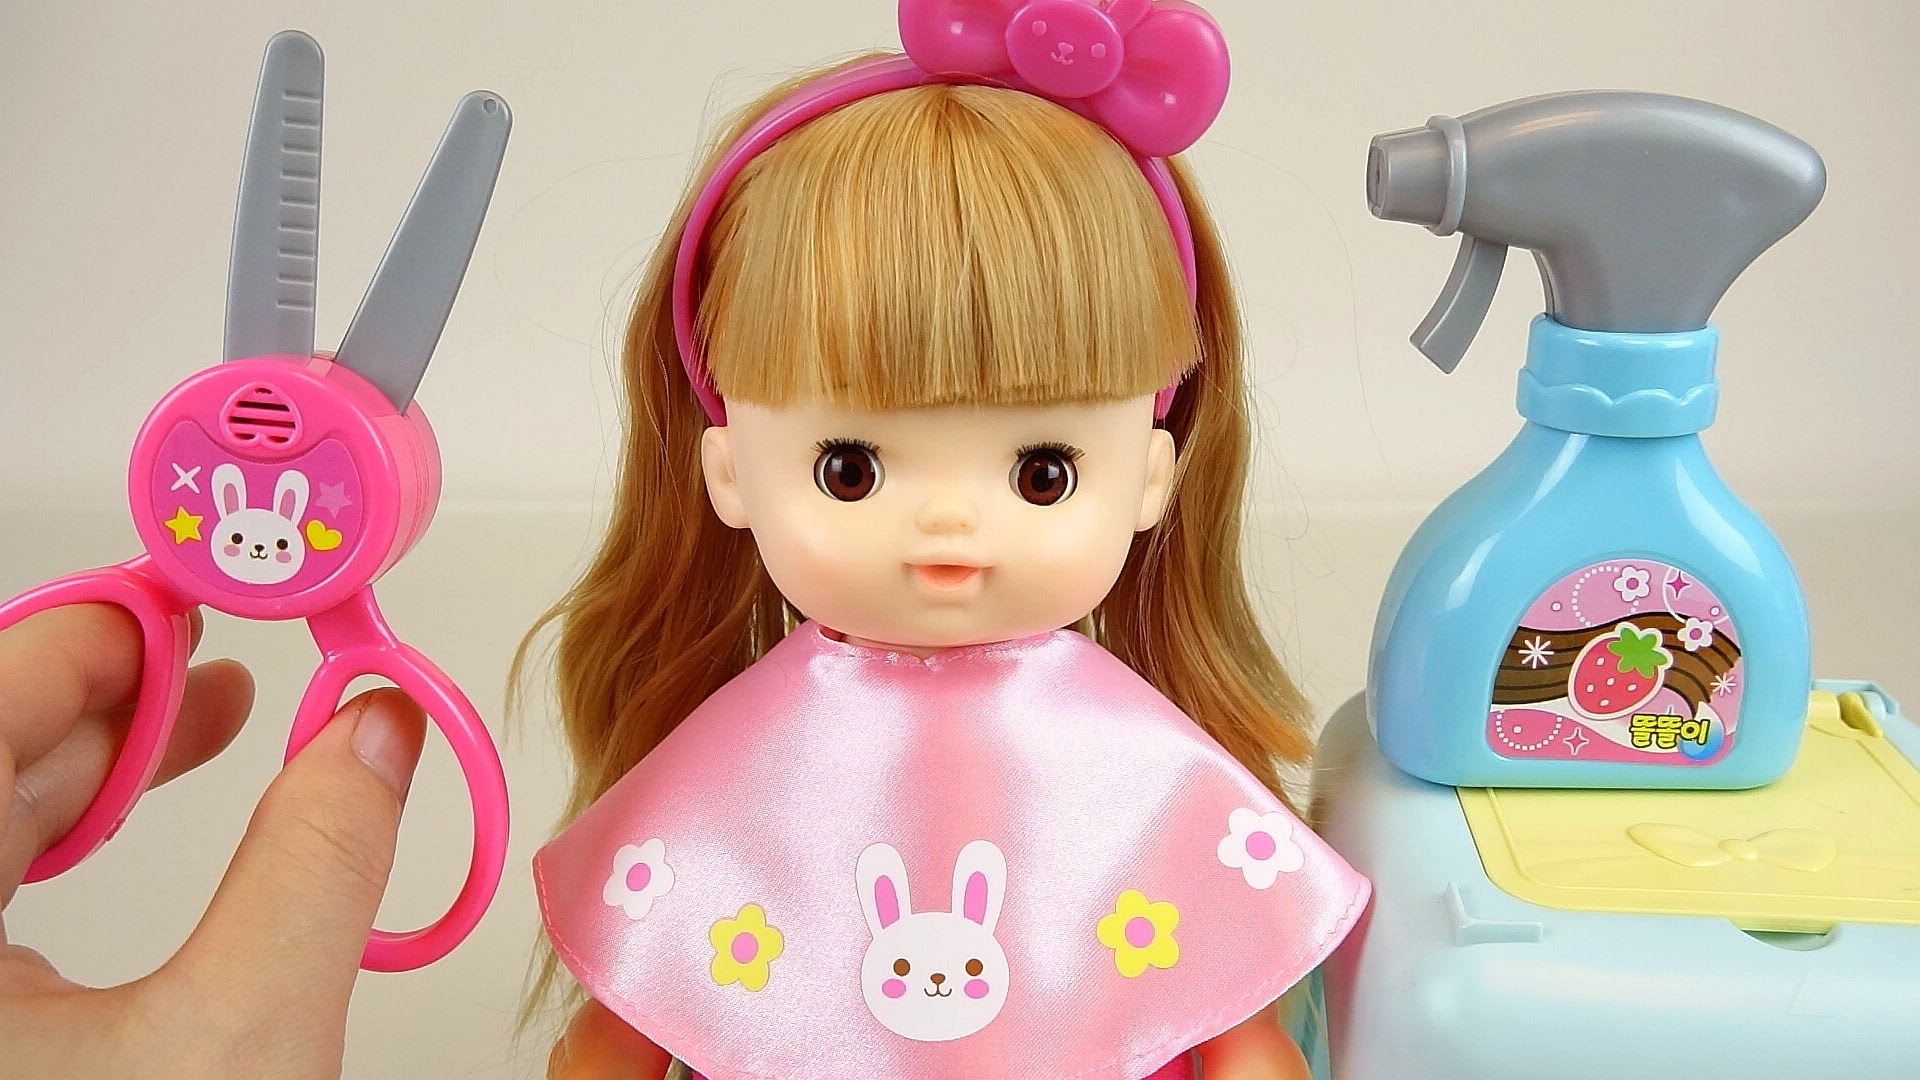 Doll toy photo